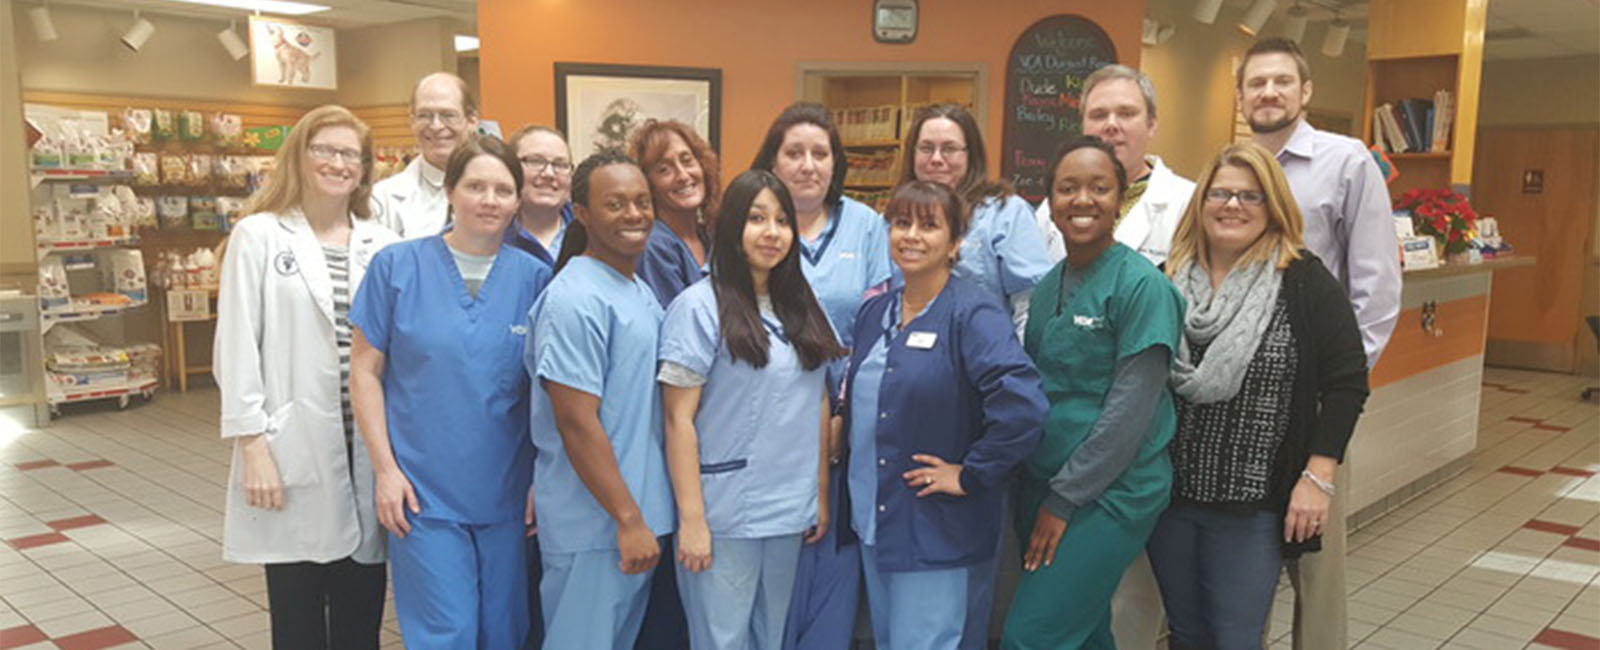 Homepage Team Picture of VCA Durant Road Animal Hospital